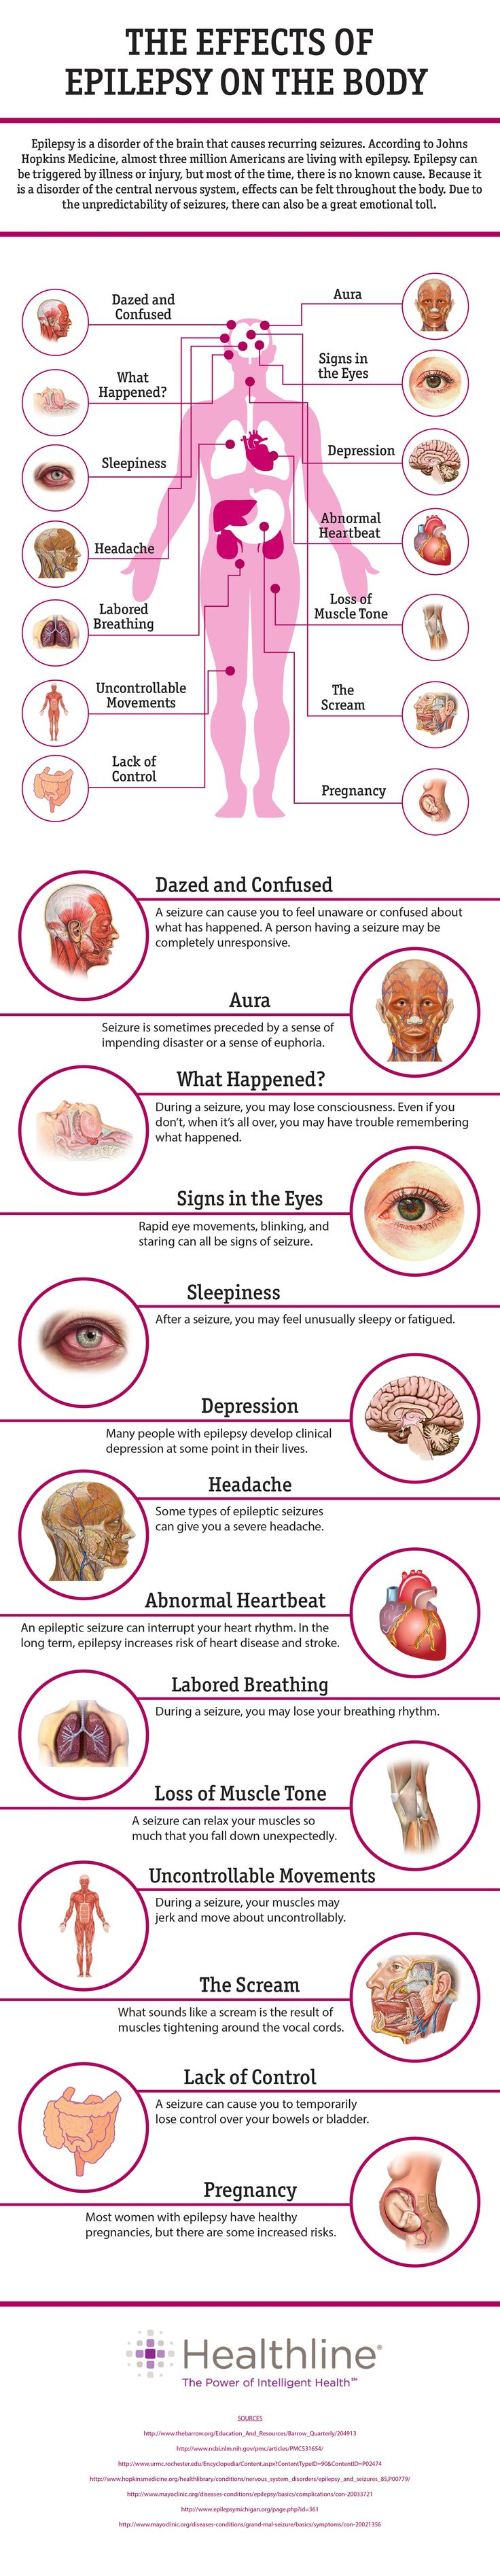 The Effects of Epilepsy on the Body